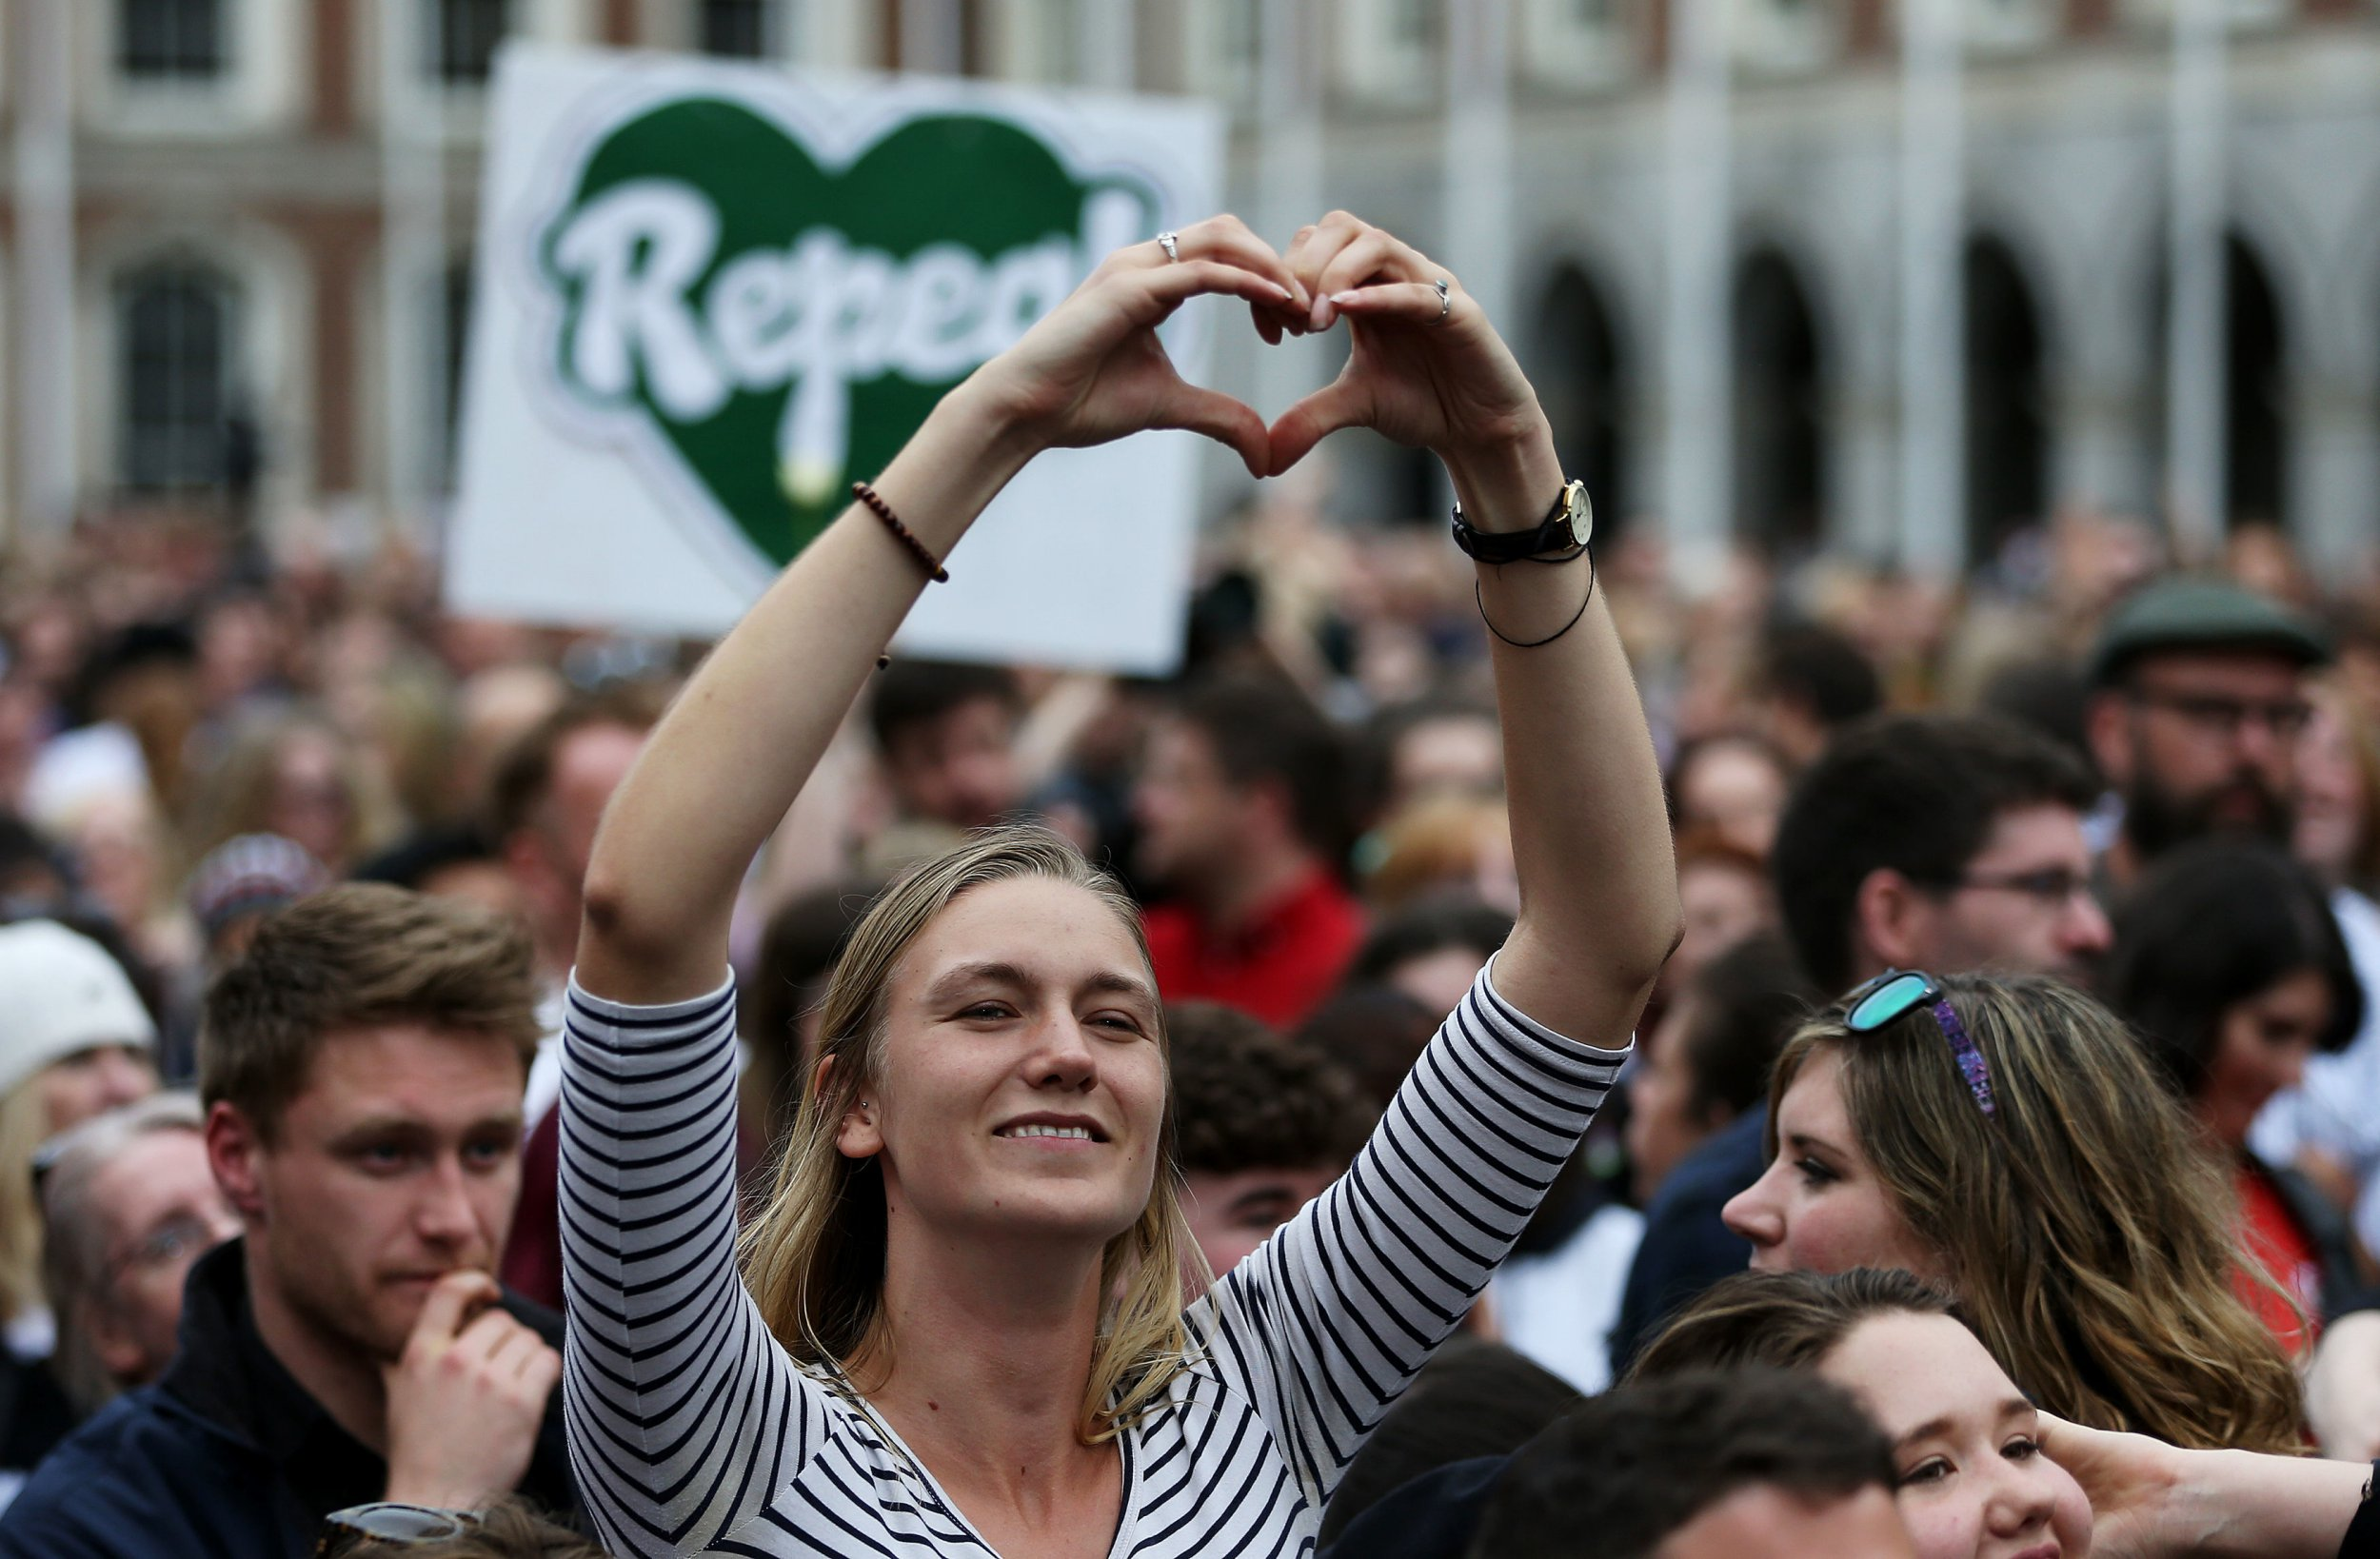 Irish President signs law repealing abortion ban